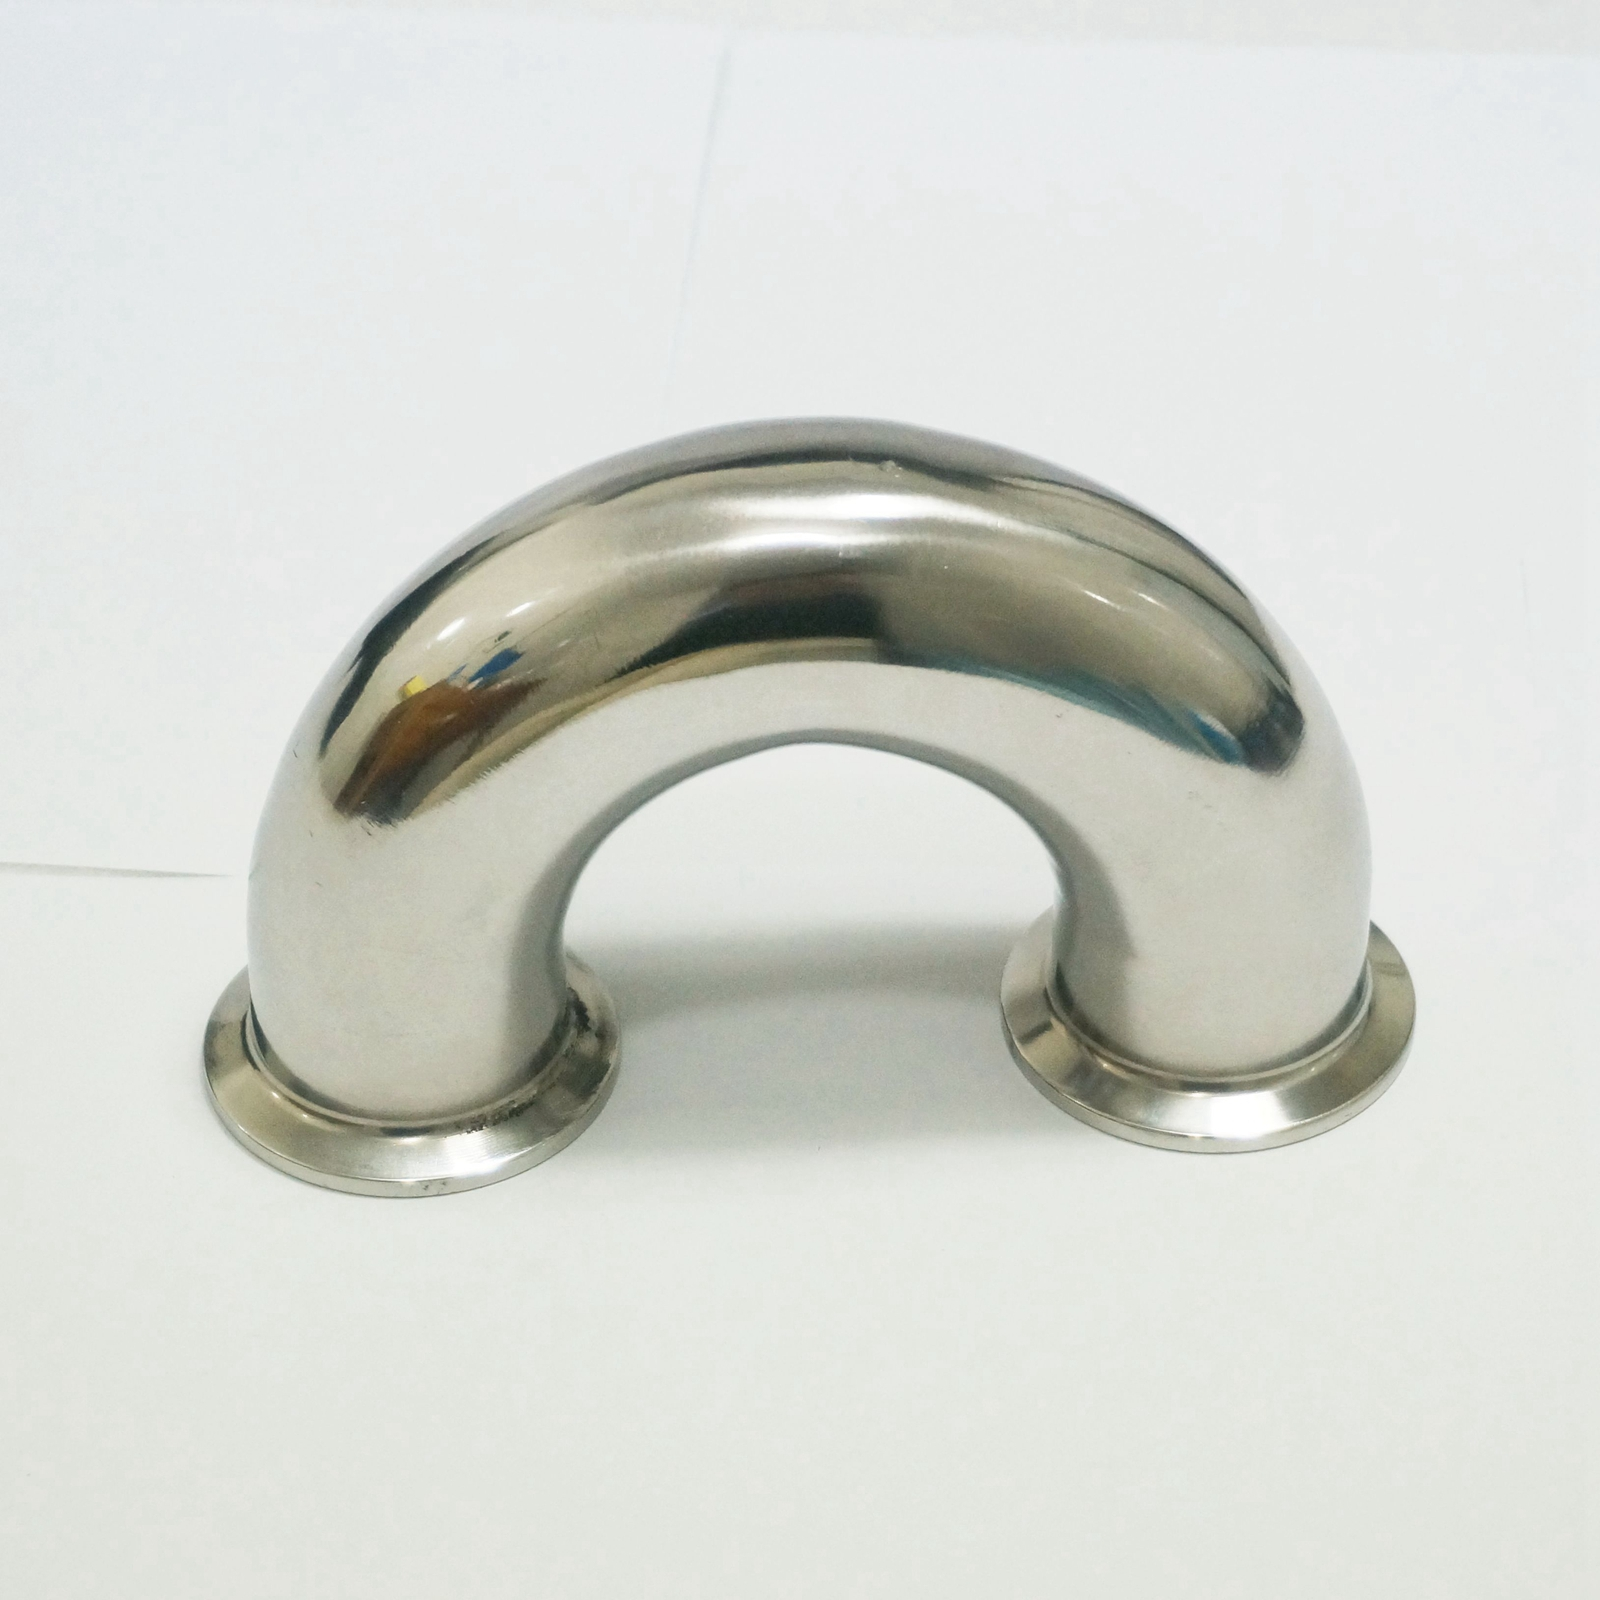 38mm O D 1 5 Tri Clamp 304 Stainless Steel Sanitary 180 Degree Return Bend Three